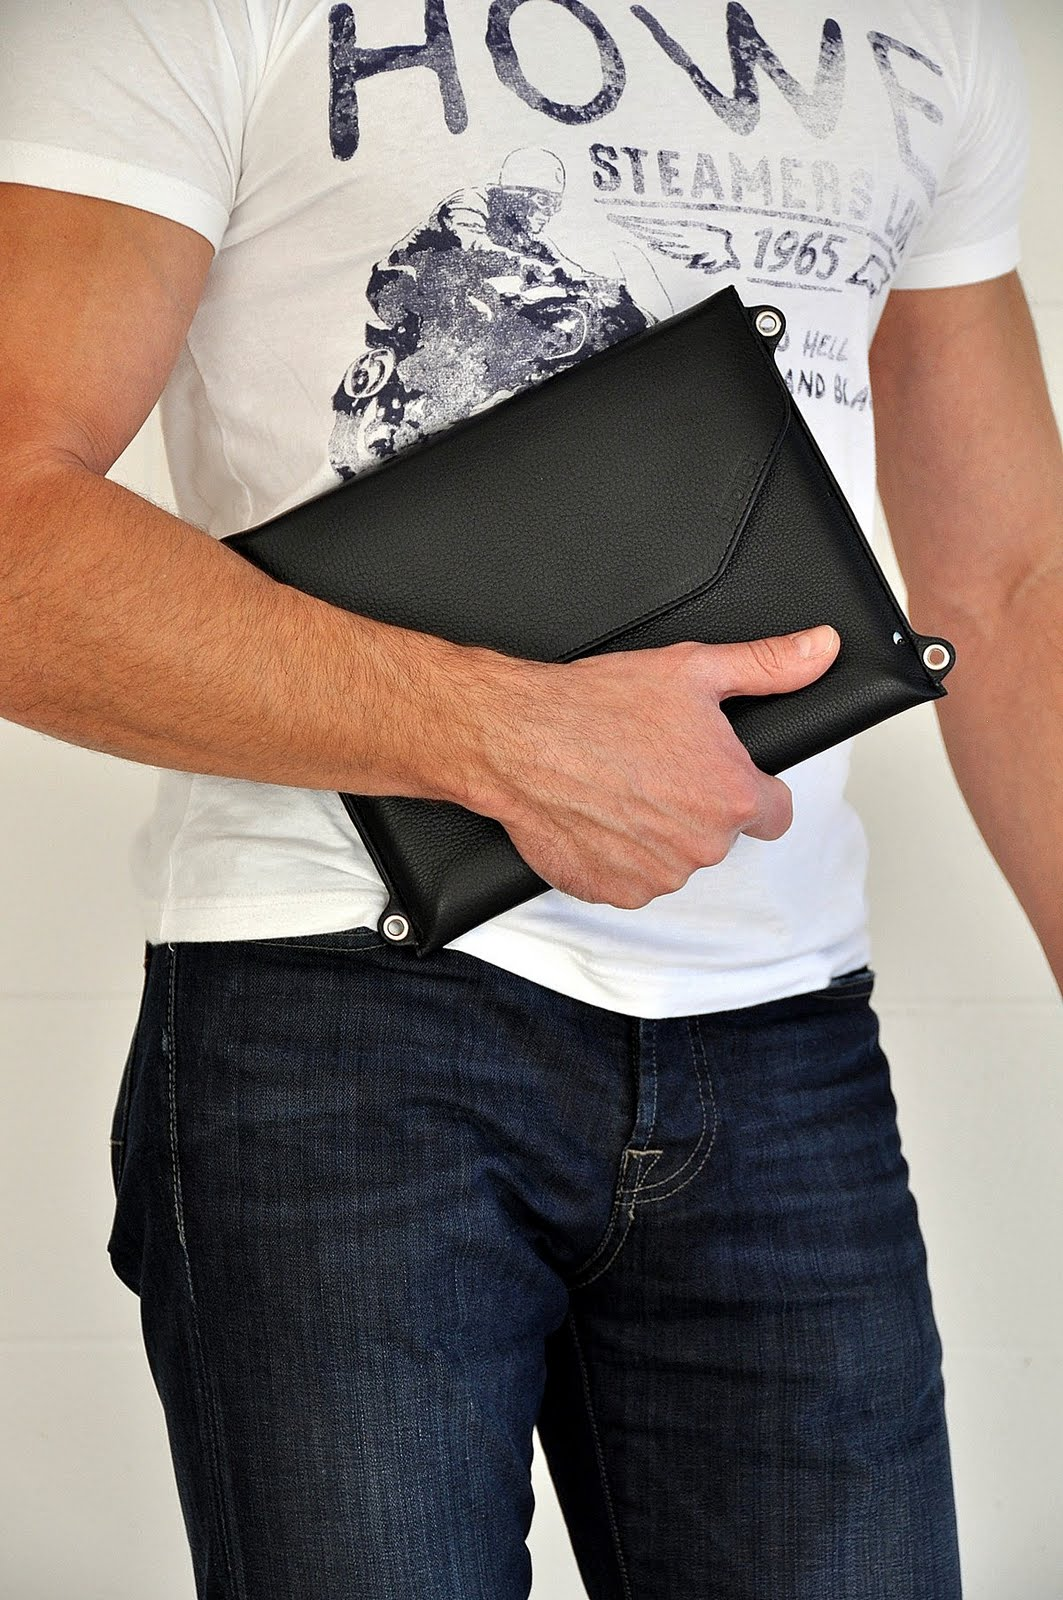 Without the strap Across is a slim portfolio case